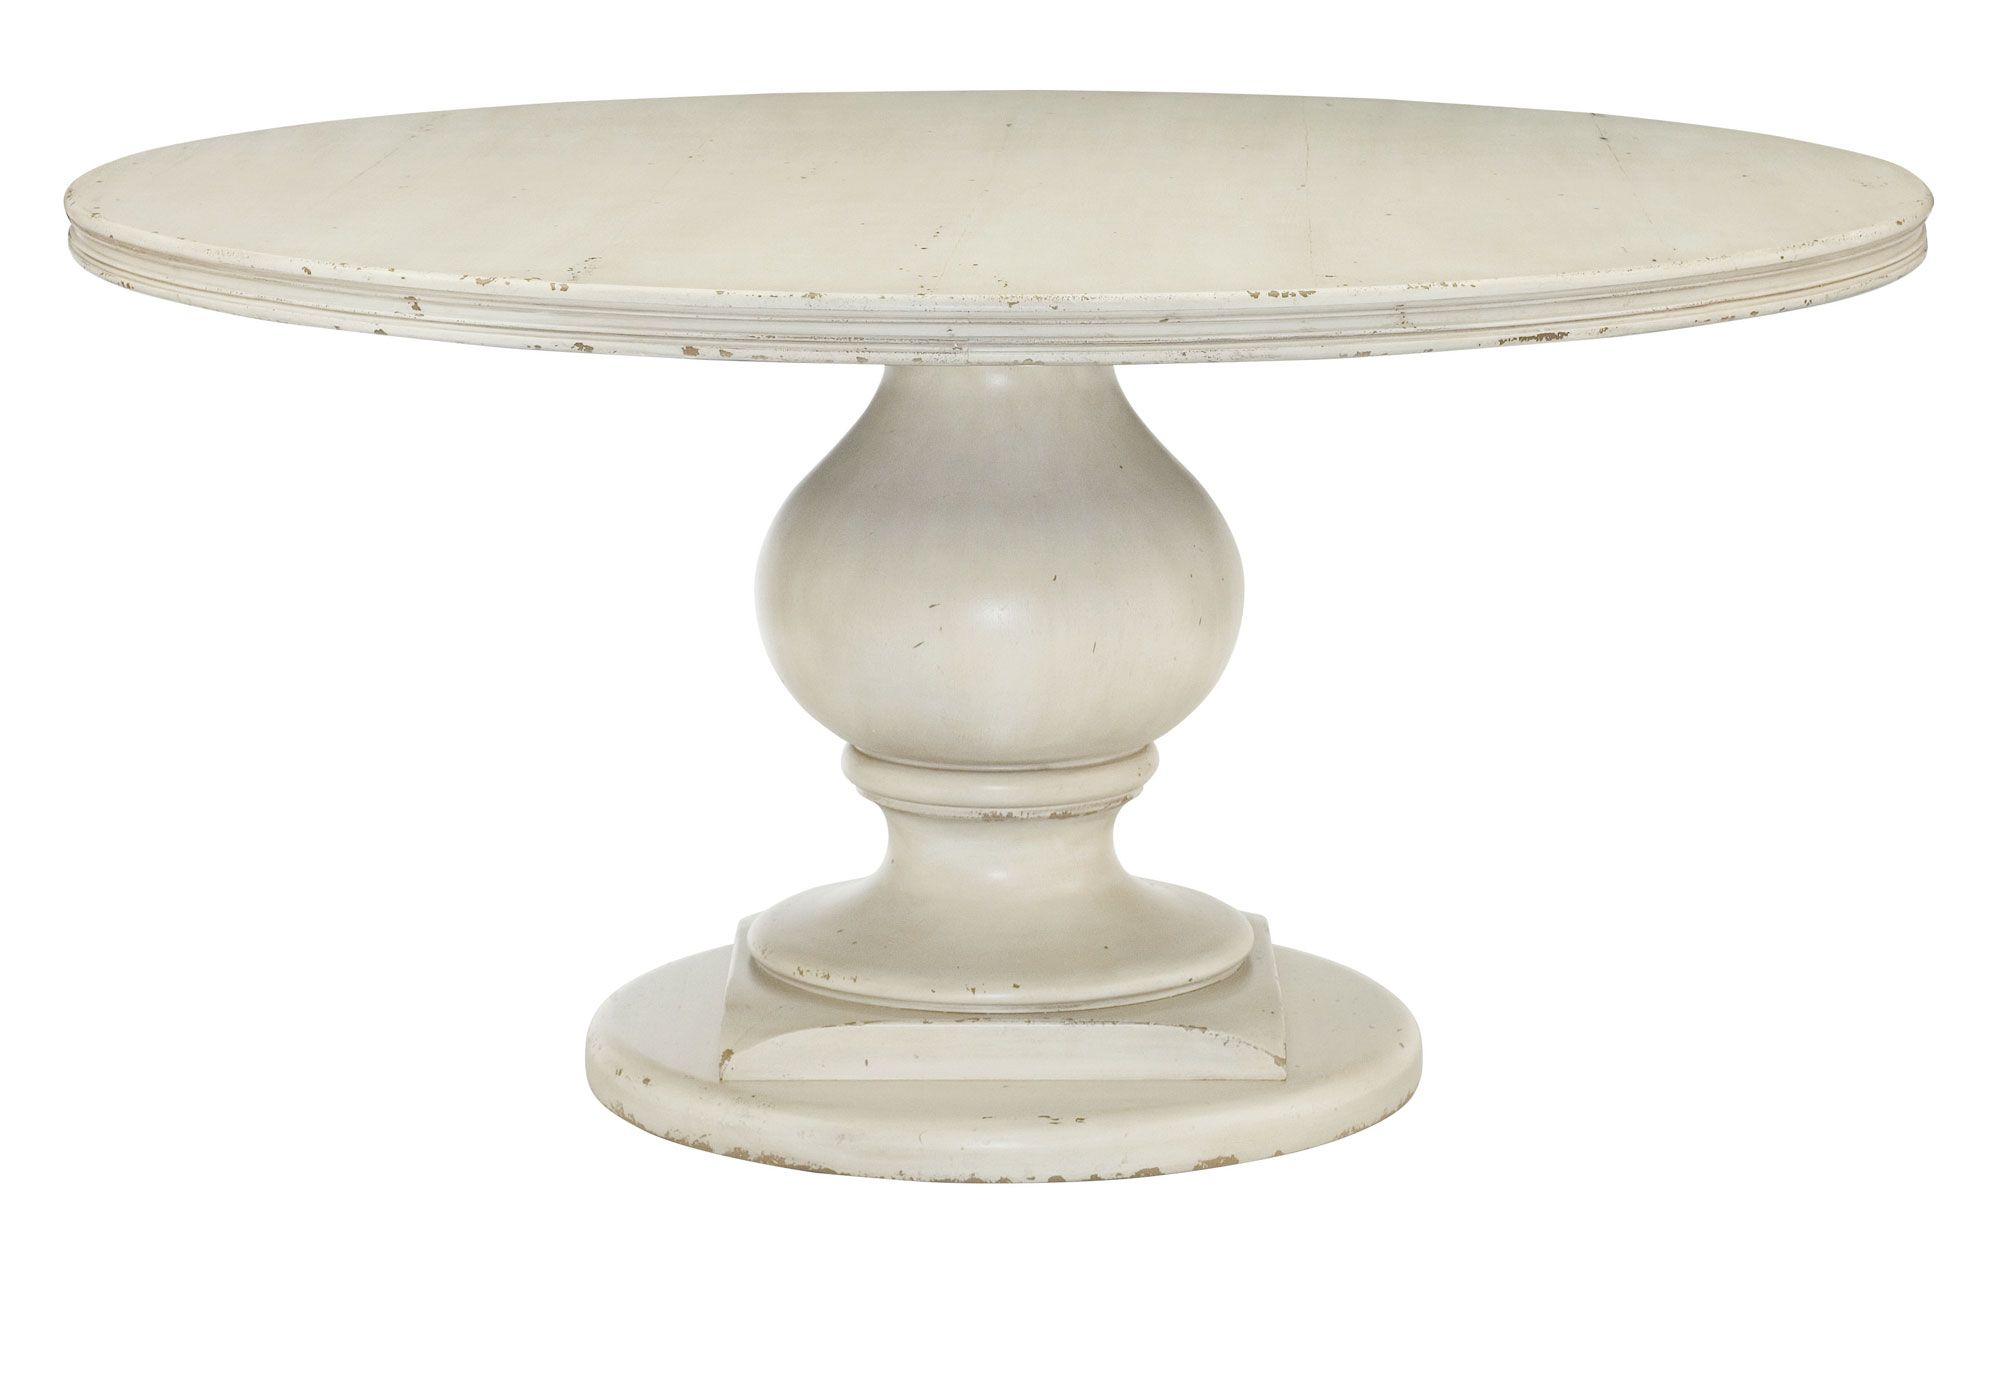 Good Round Dining Table Top And Pedestal Dining Table Base | Bernhardt